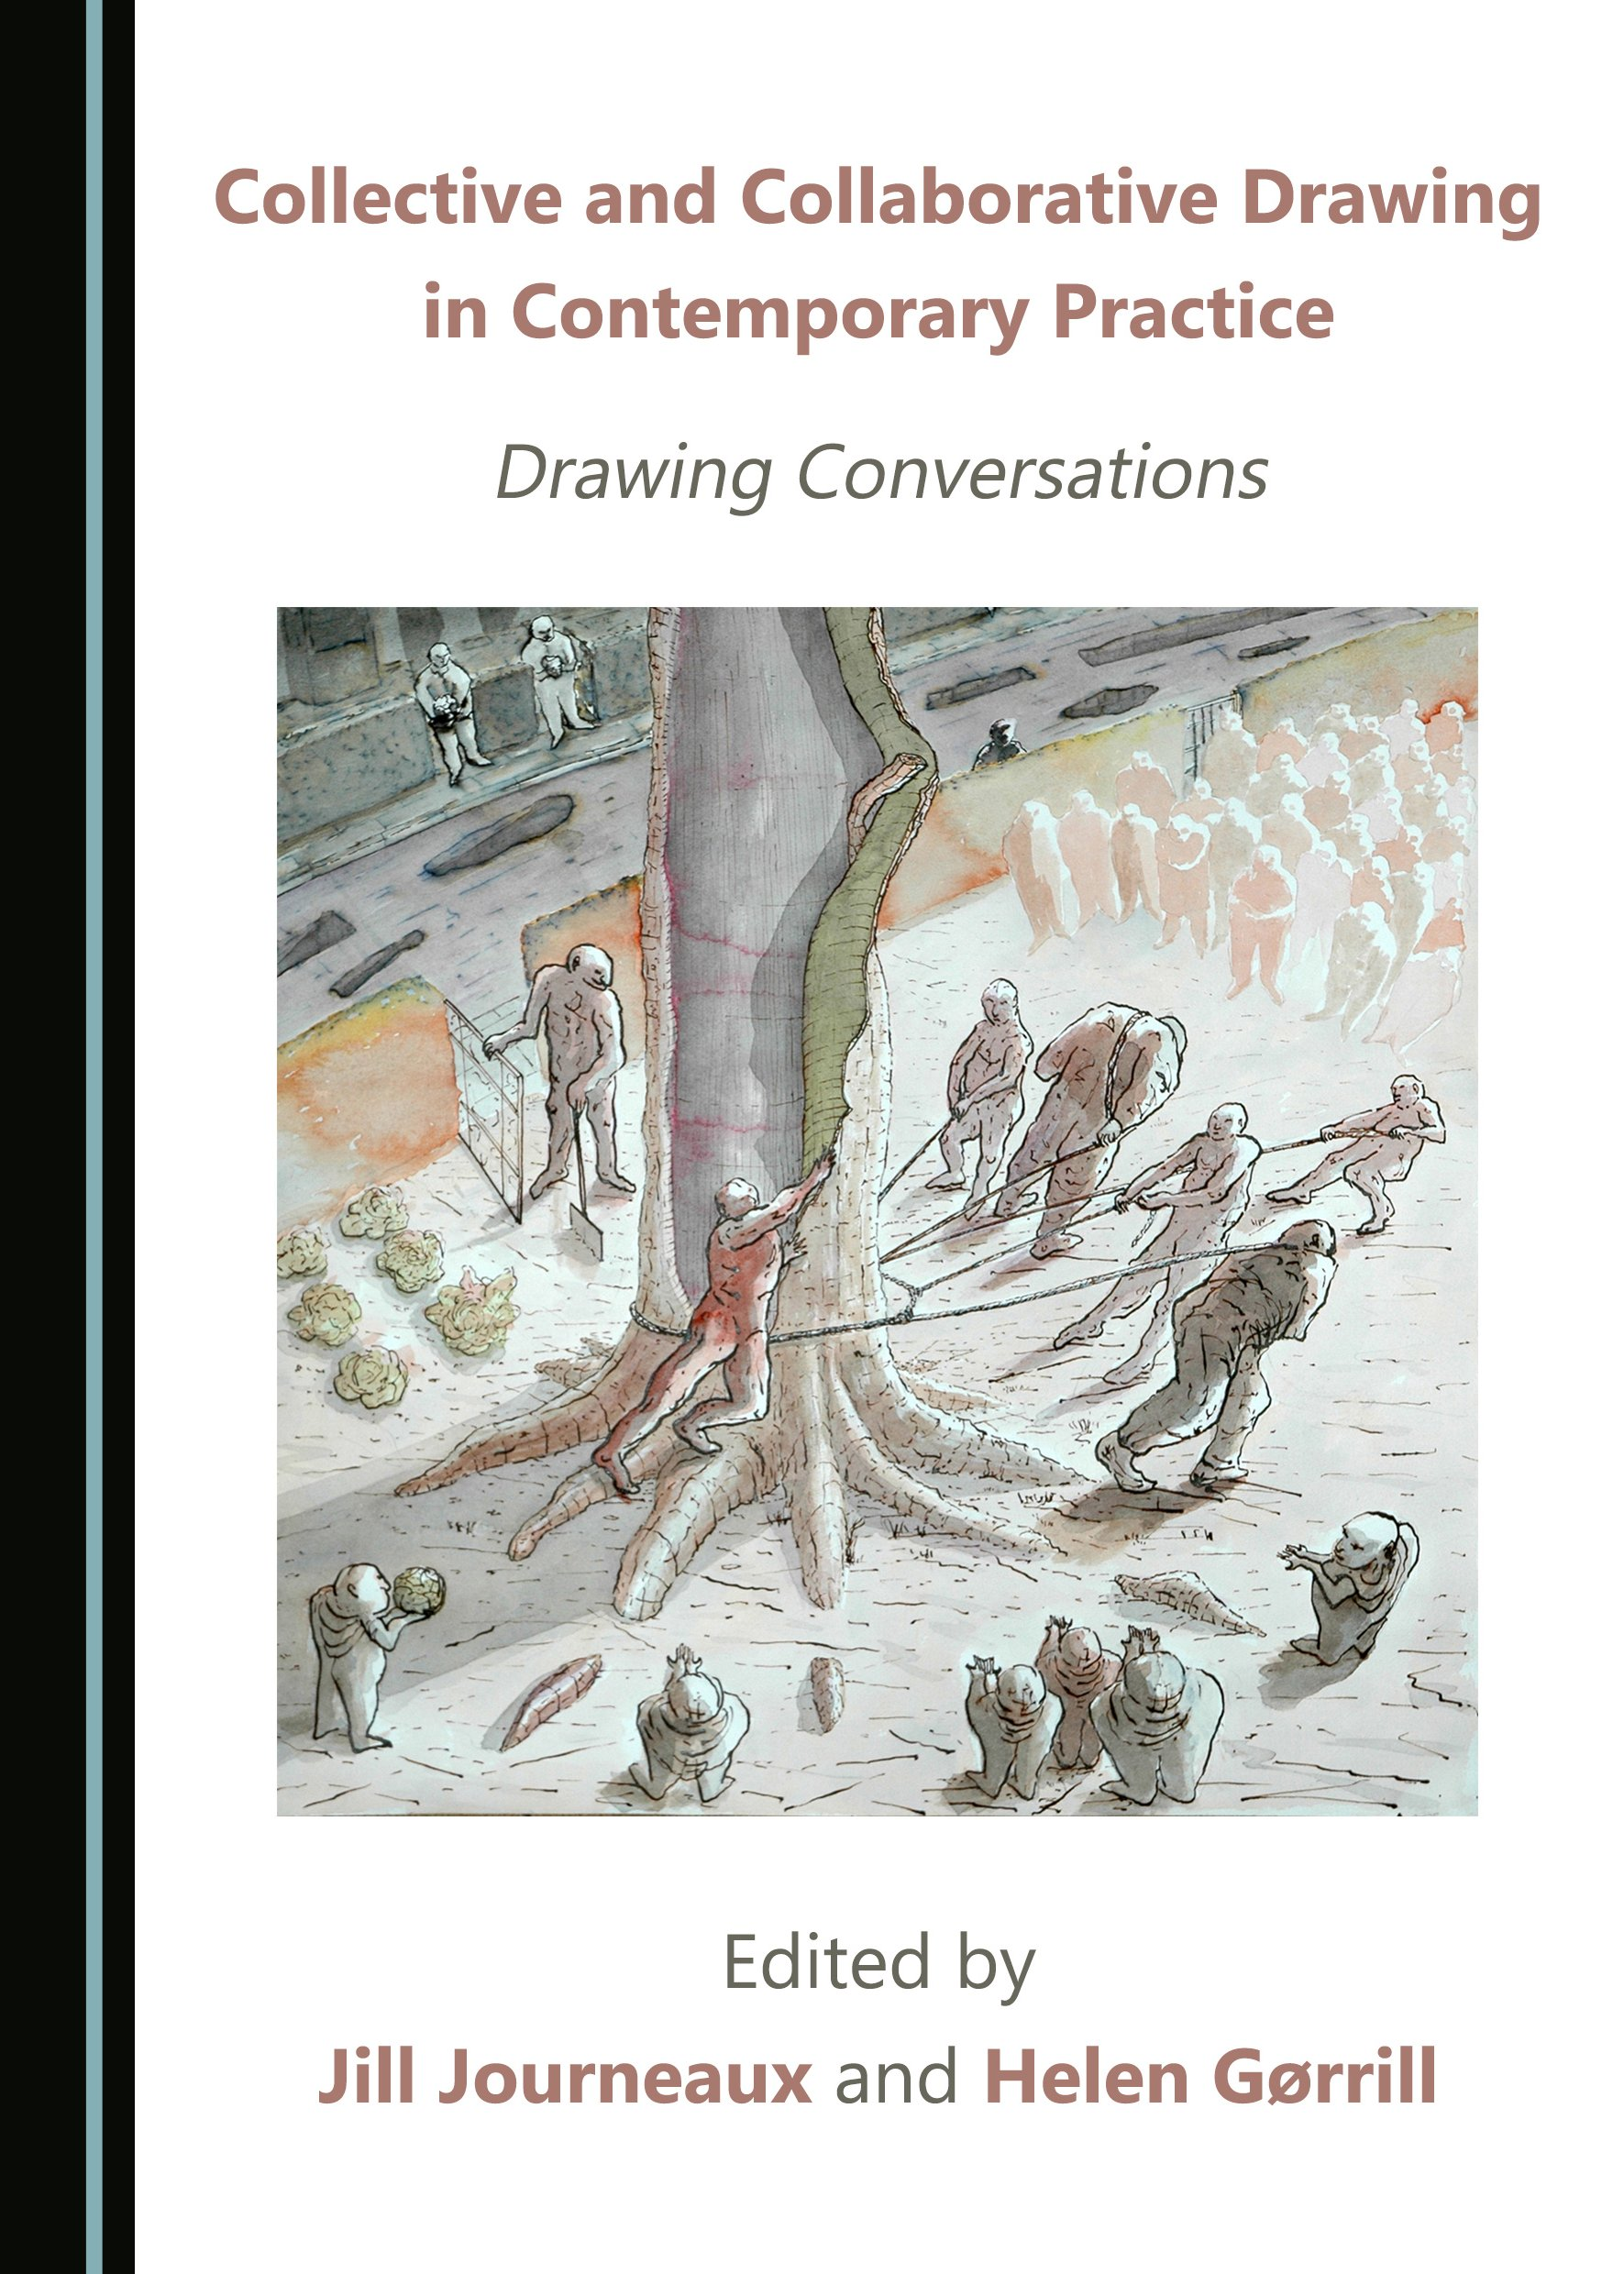 Collective and Collaborative Drawing in Contemporary Practice: Drawing Conversations